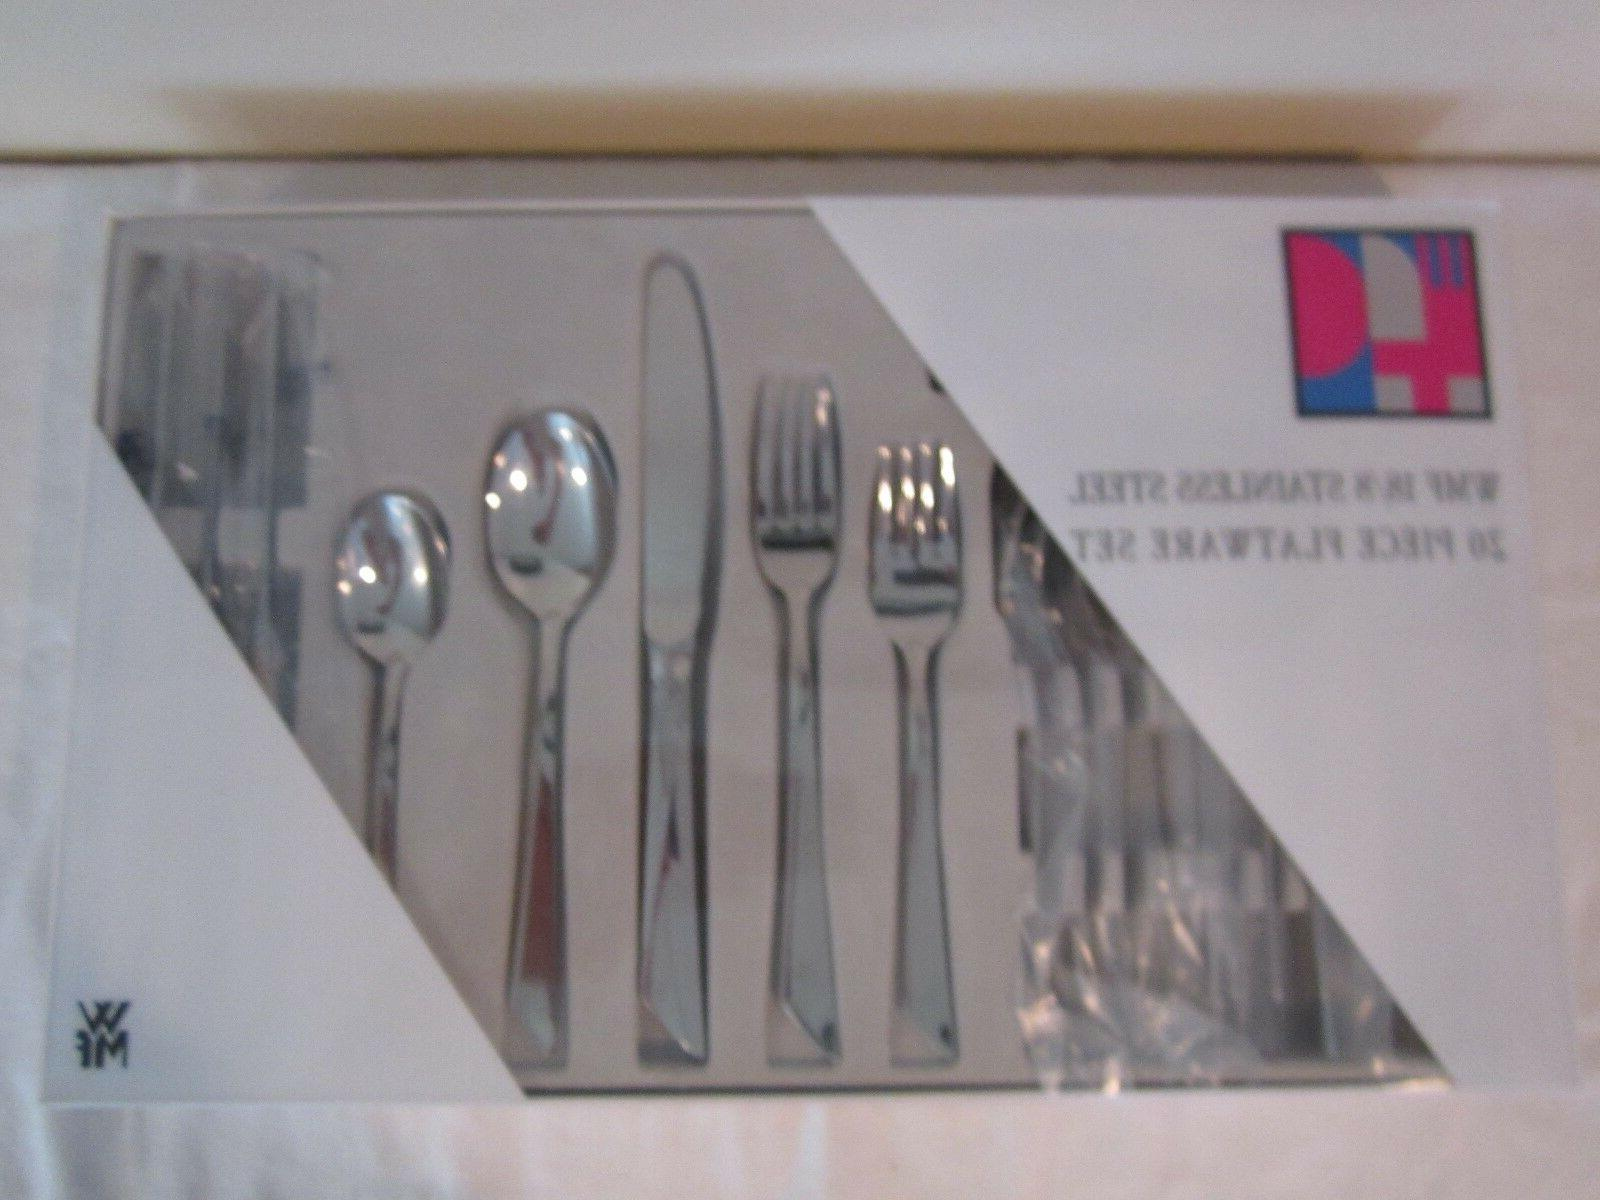 new 20 piece stainless steel flatware set